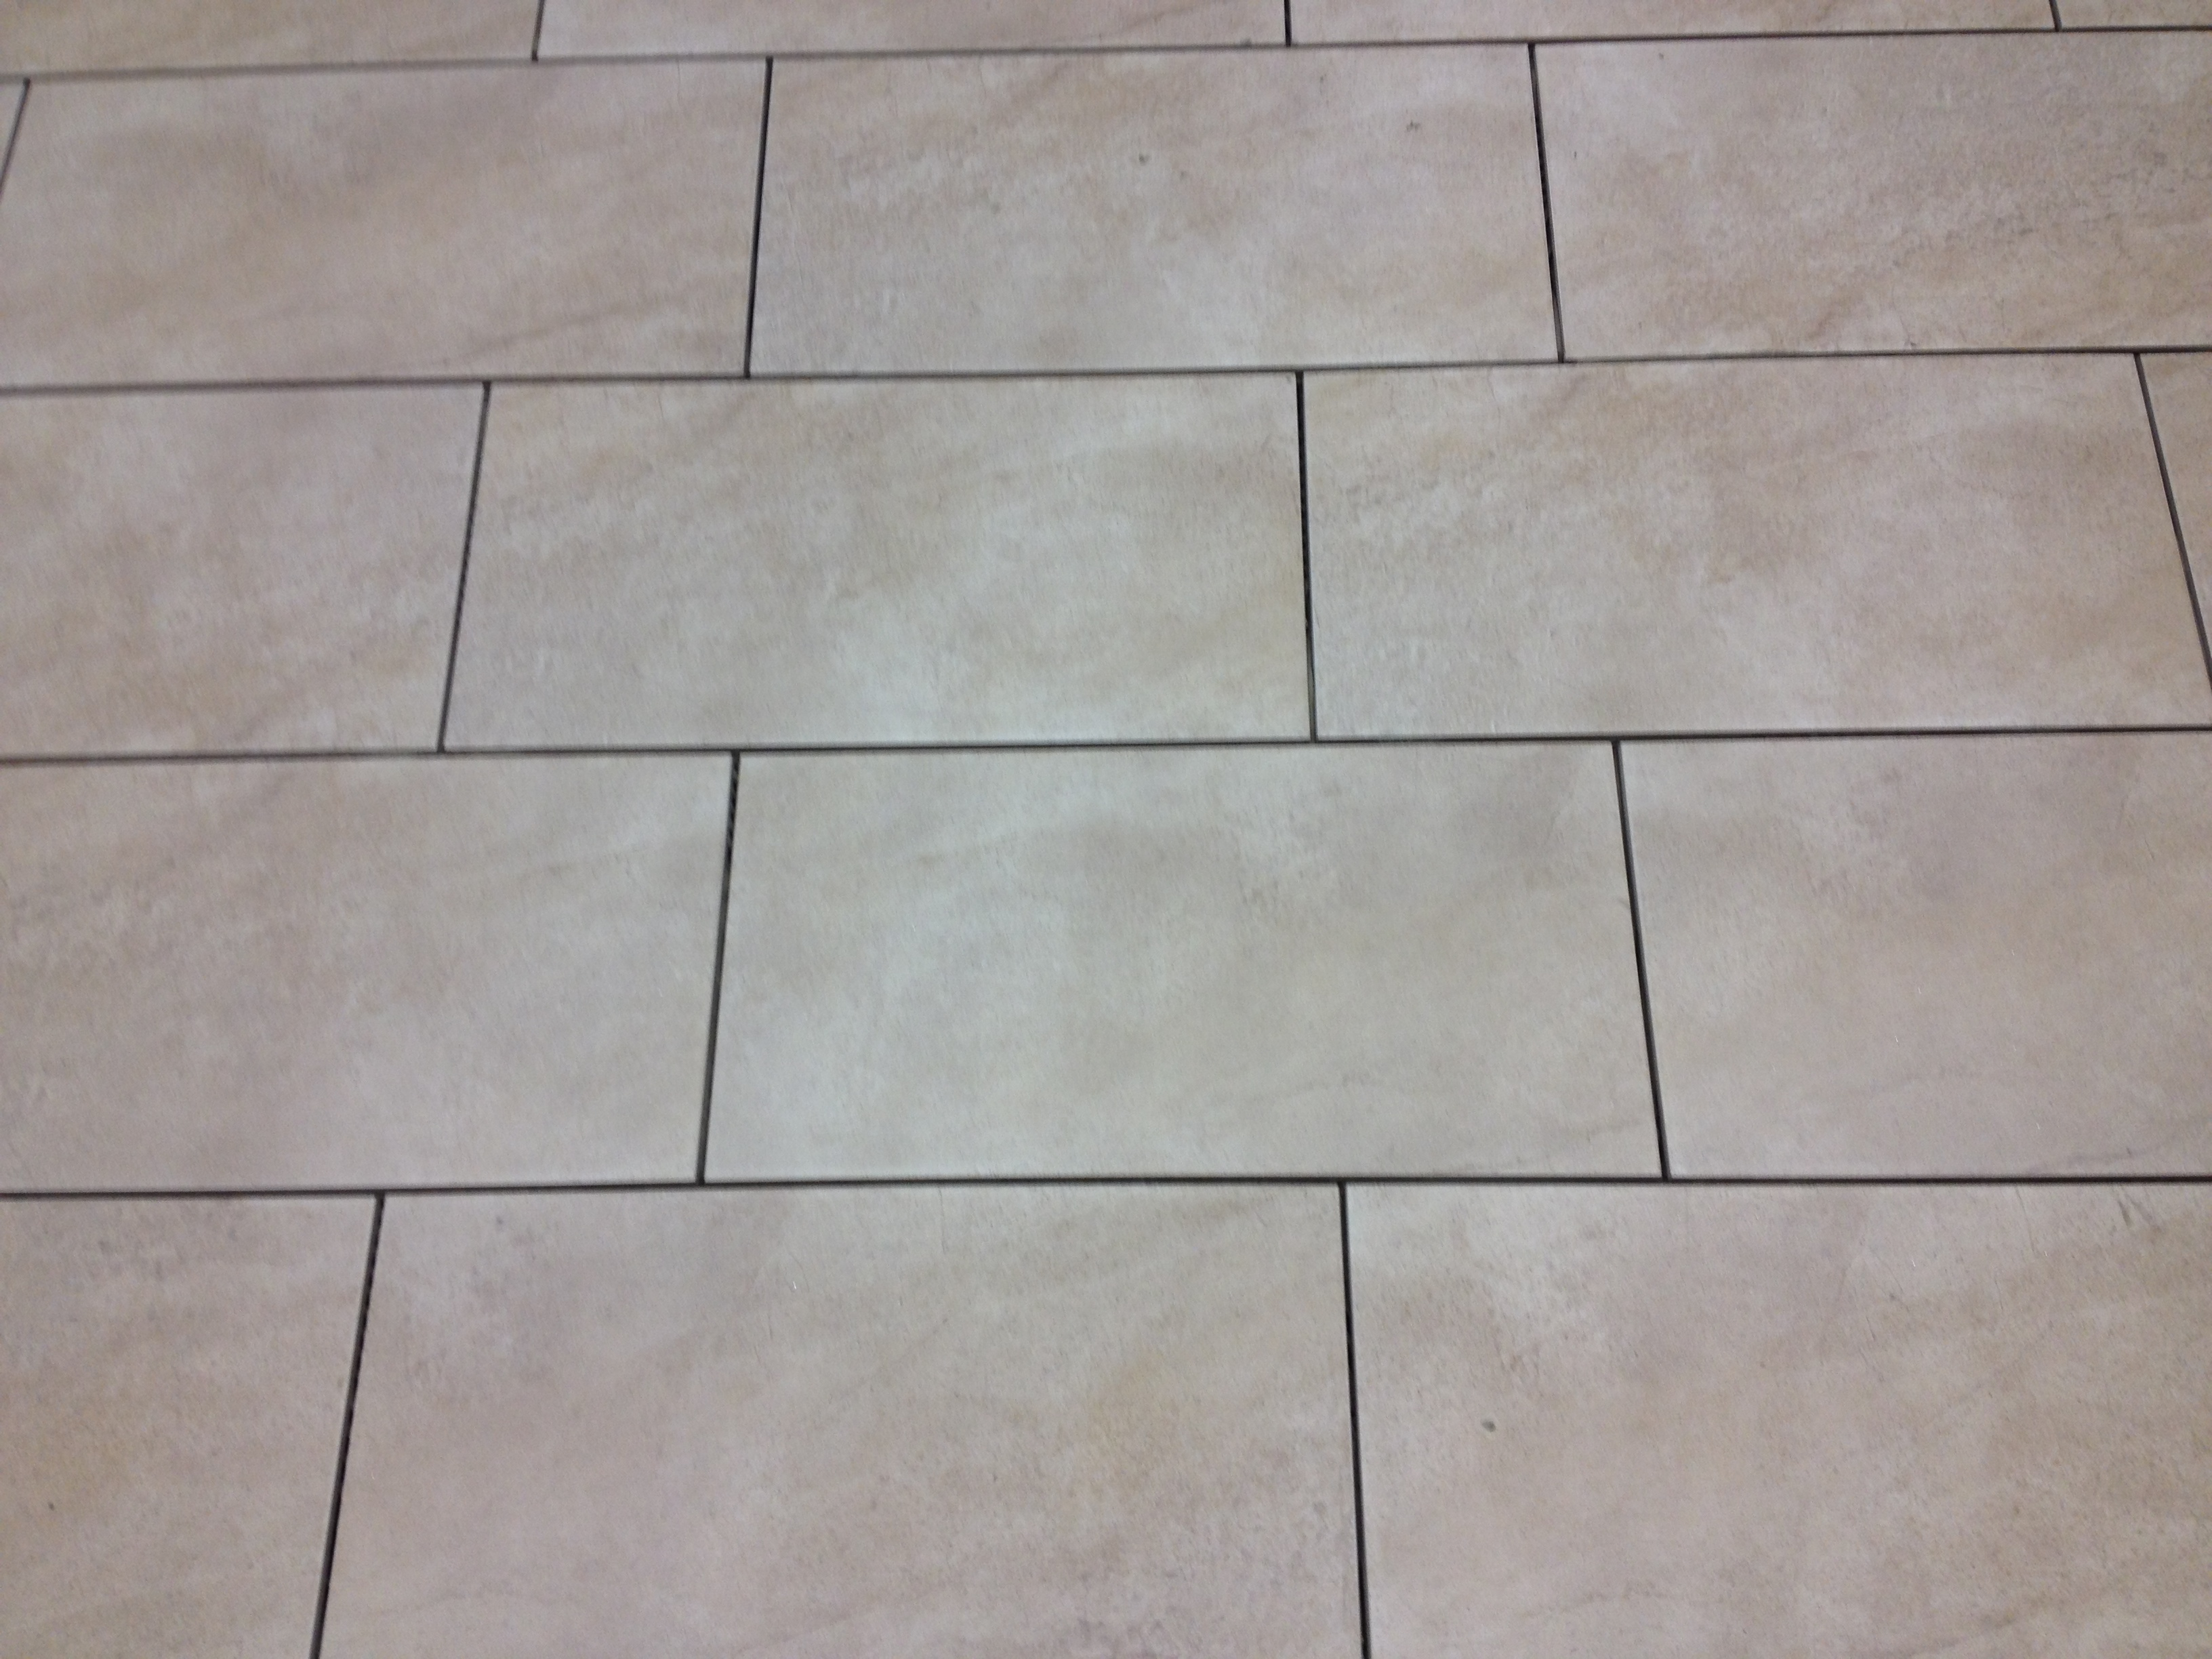 Flamingo tile a flooring contractor in las vegas flamingo tile inc floor tile dailygadgetfo Choice Image